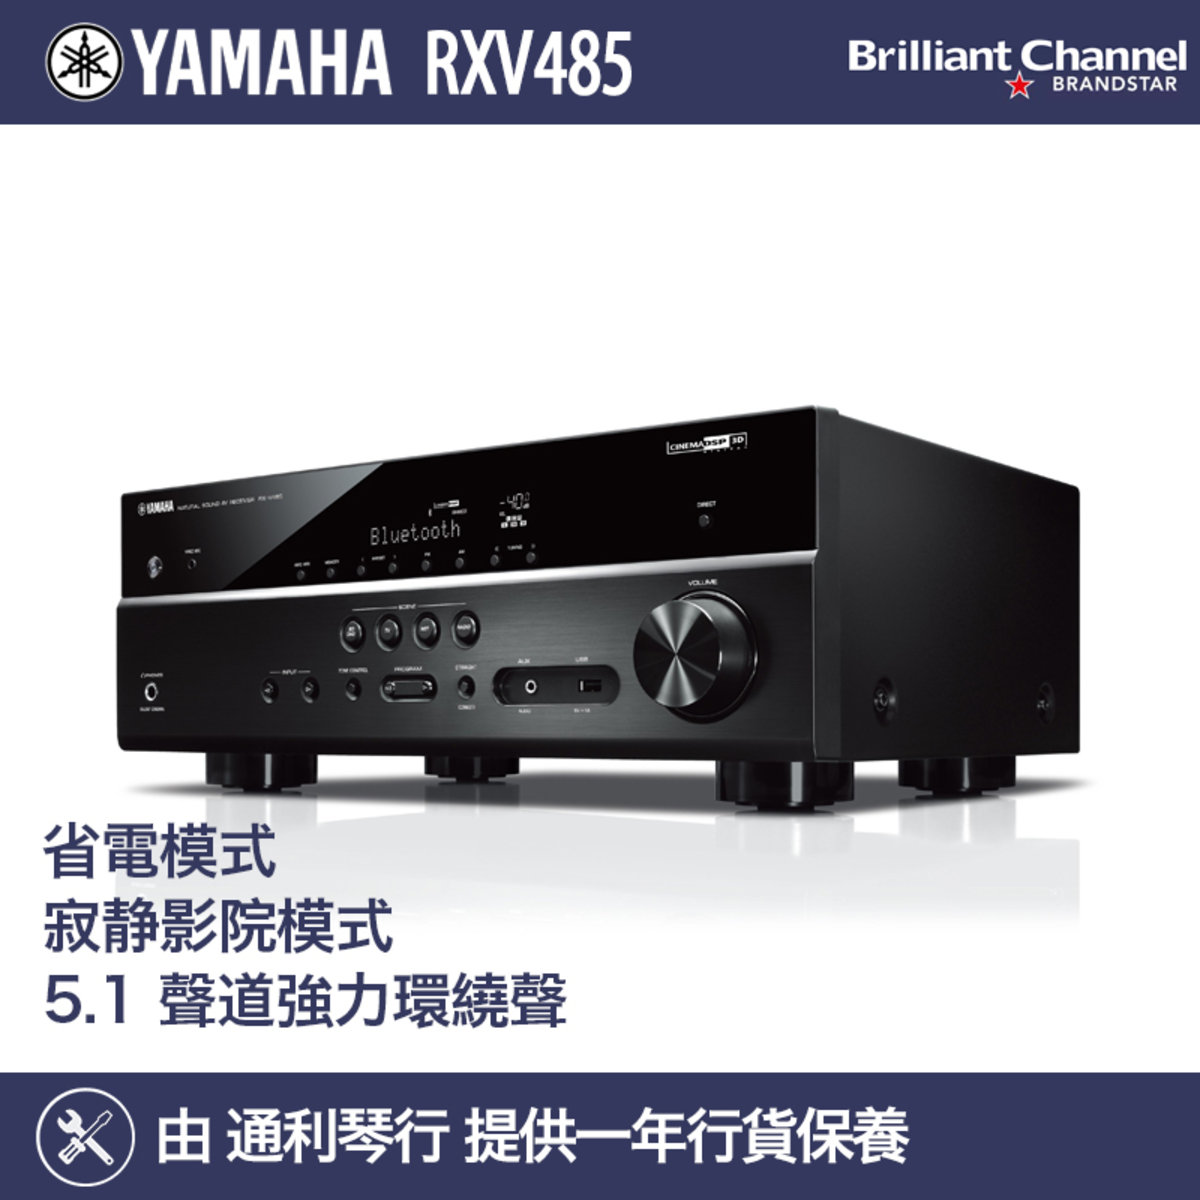 5.1-channel AV Receiver RXV485 (Black) (Official Product)